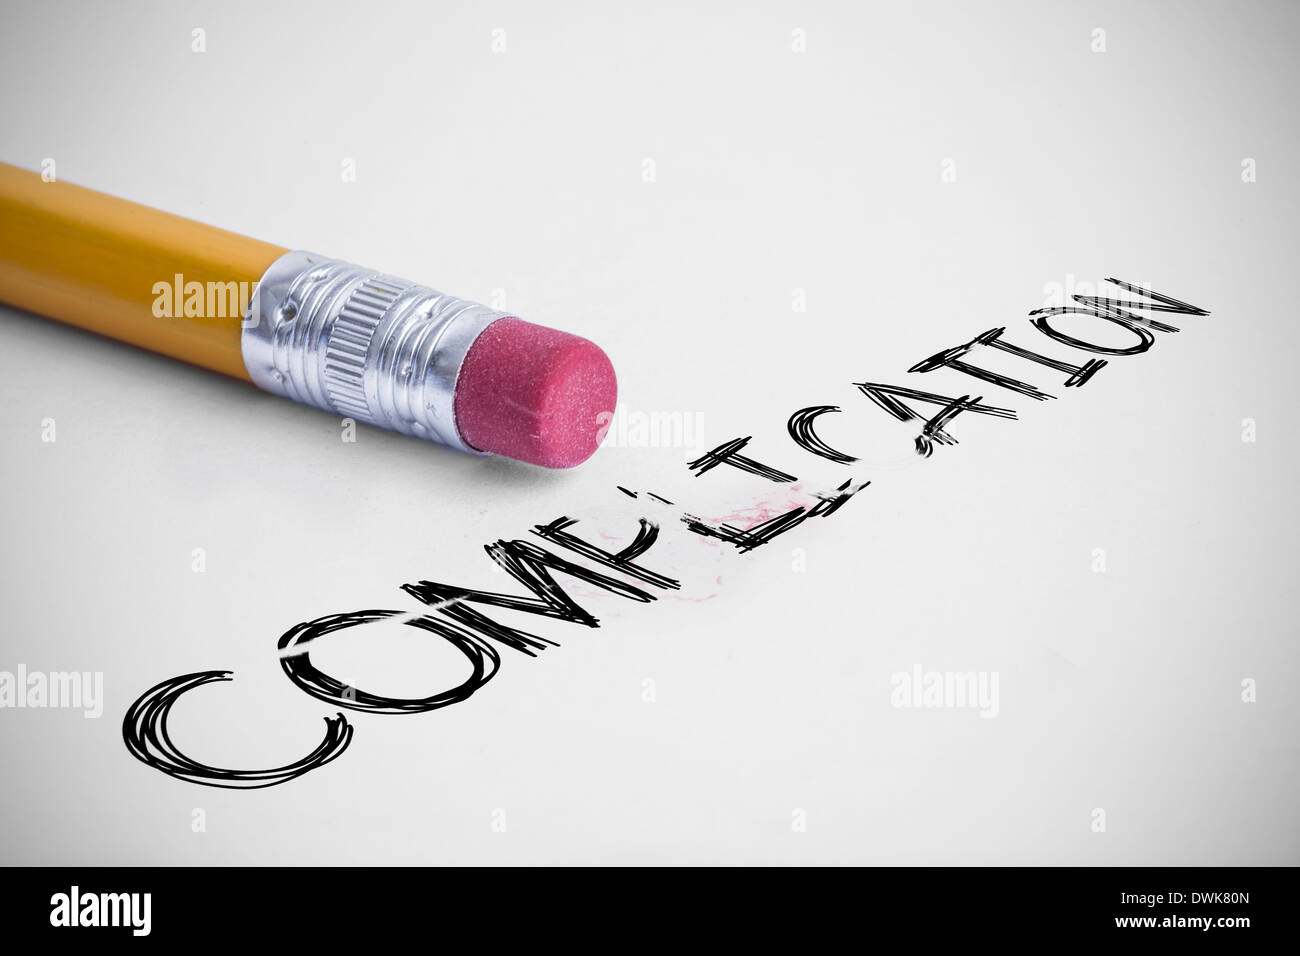 Complication against pencil with an eraser - Stock Image